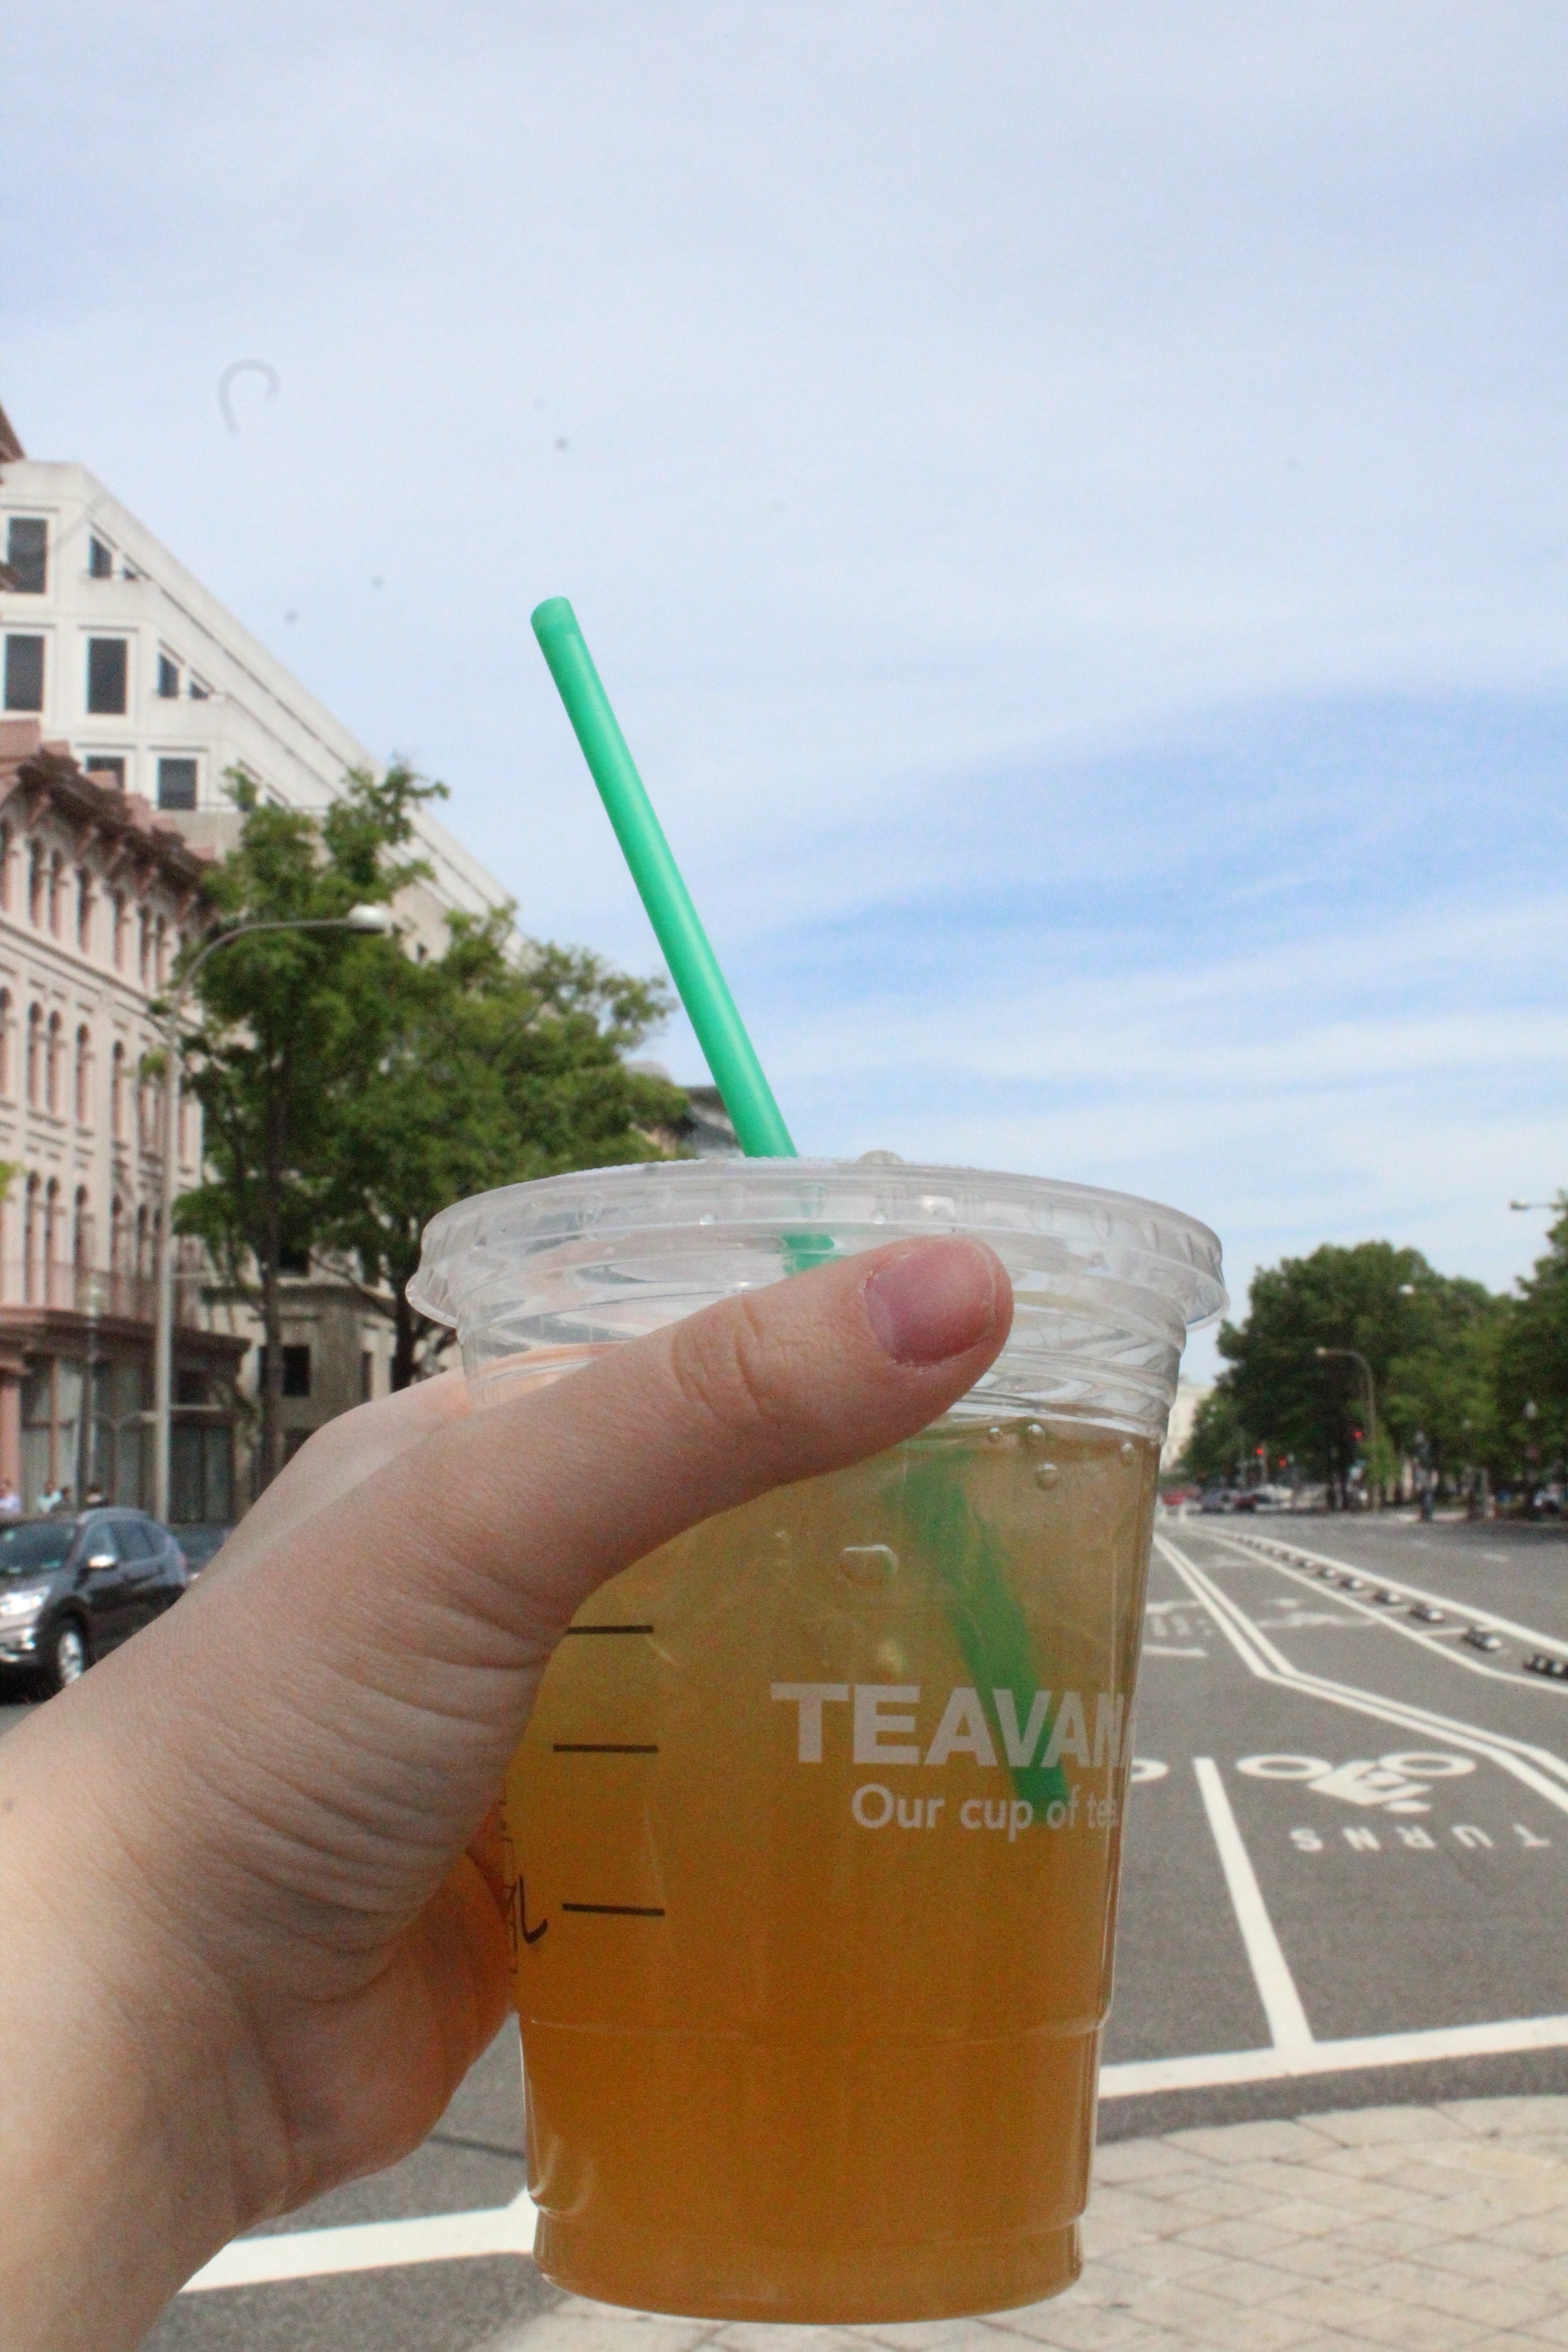 Starbucks best summer drink is here--Iced Peach Green Tea Lemonade!